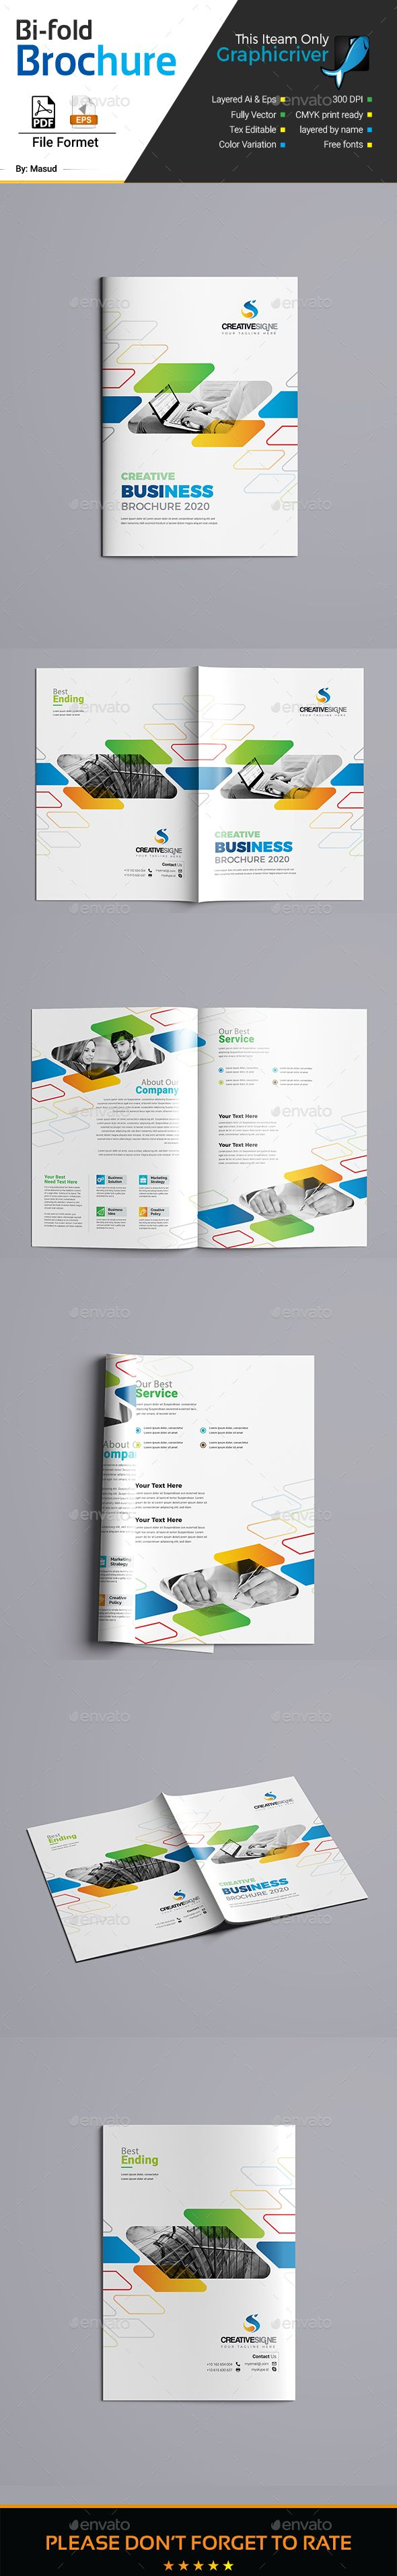 Logo keynote template website powerpoint templates logo keynote template website powerpoint templates presentation animation backgrounds brochure pptwork annual report business co toneelgroepblik Image collections